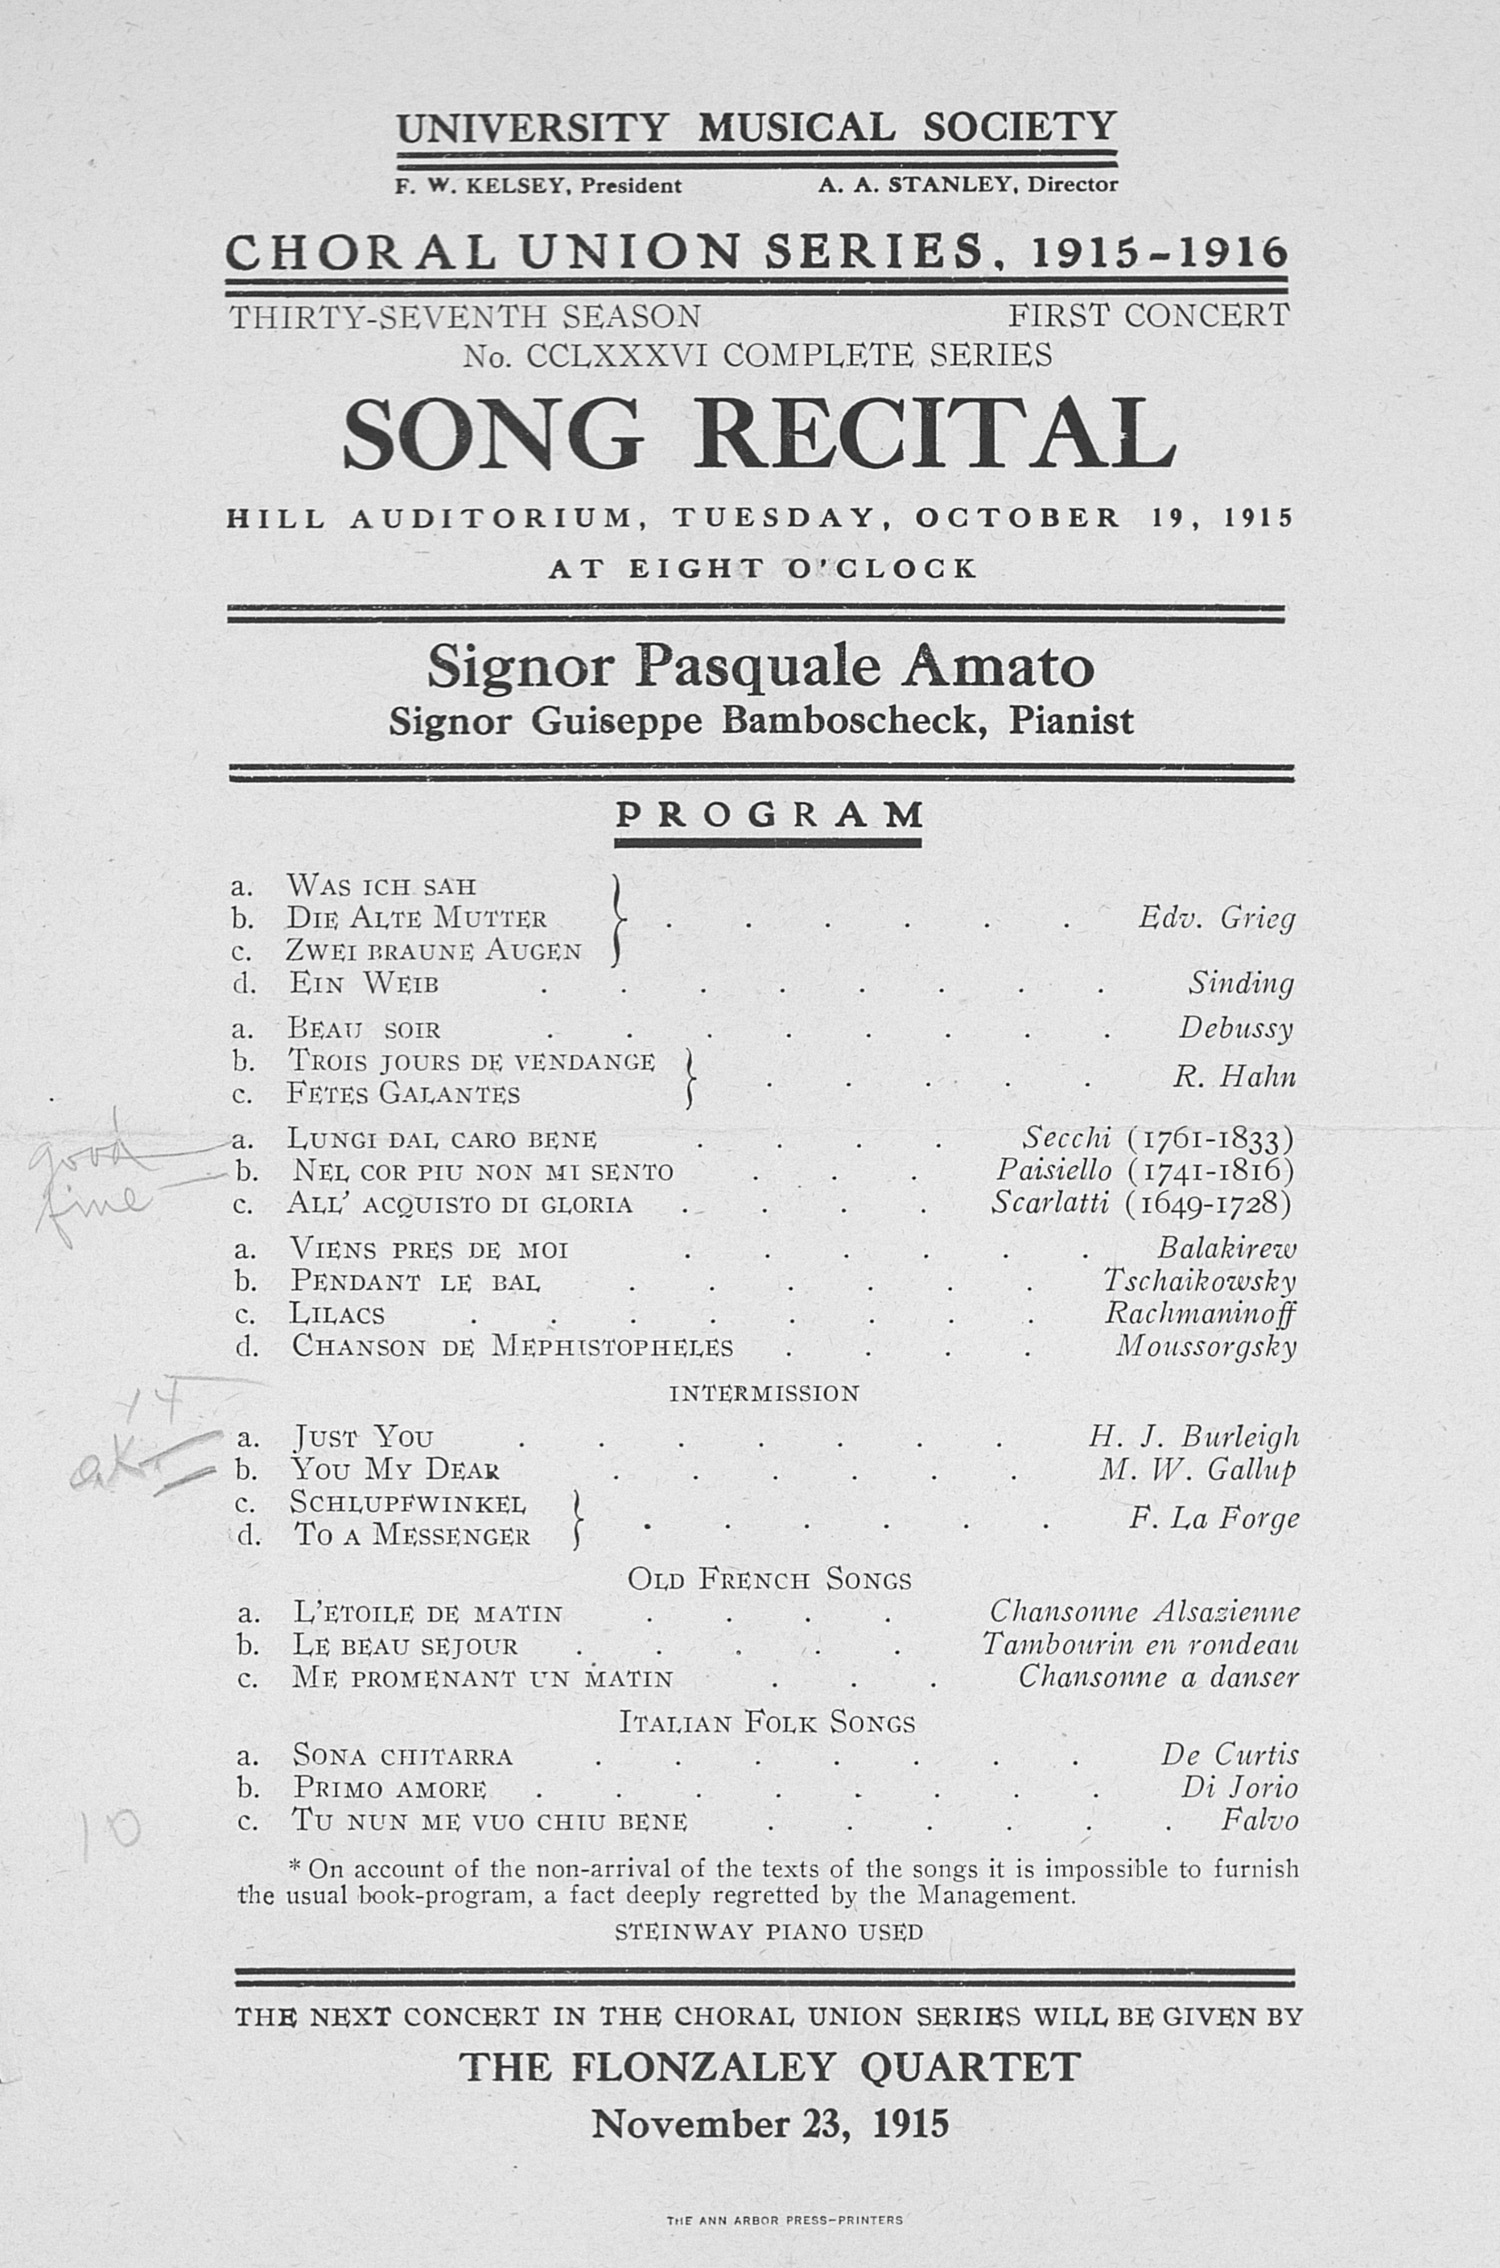 UMS Concert Program, October 19, 1915: Song Recital -- Signor Pasquale Amato image